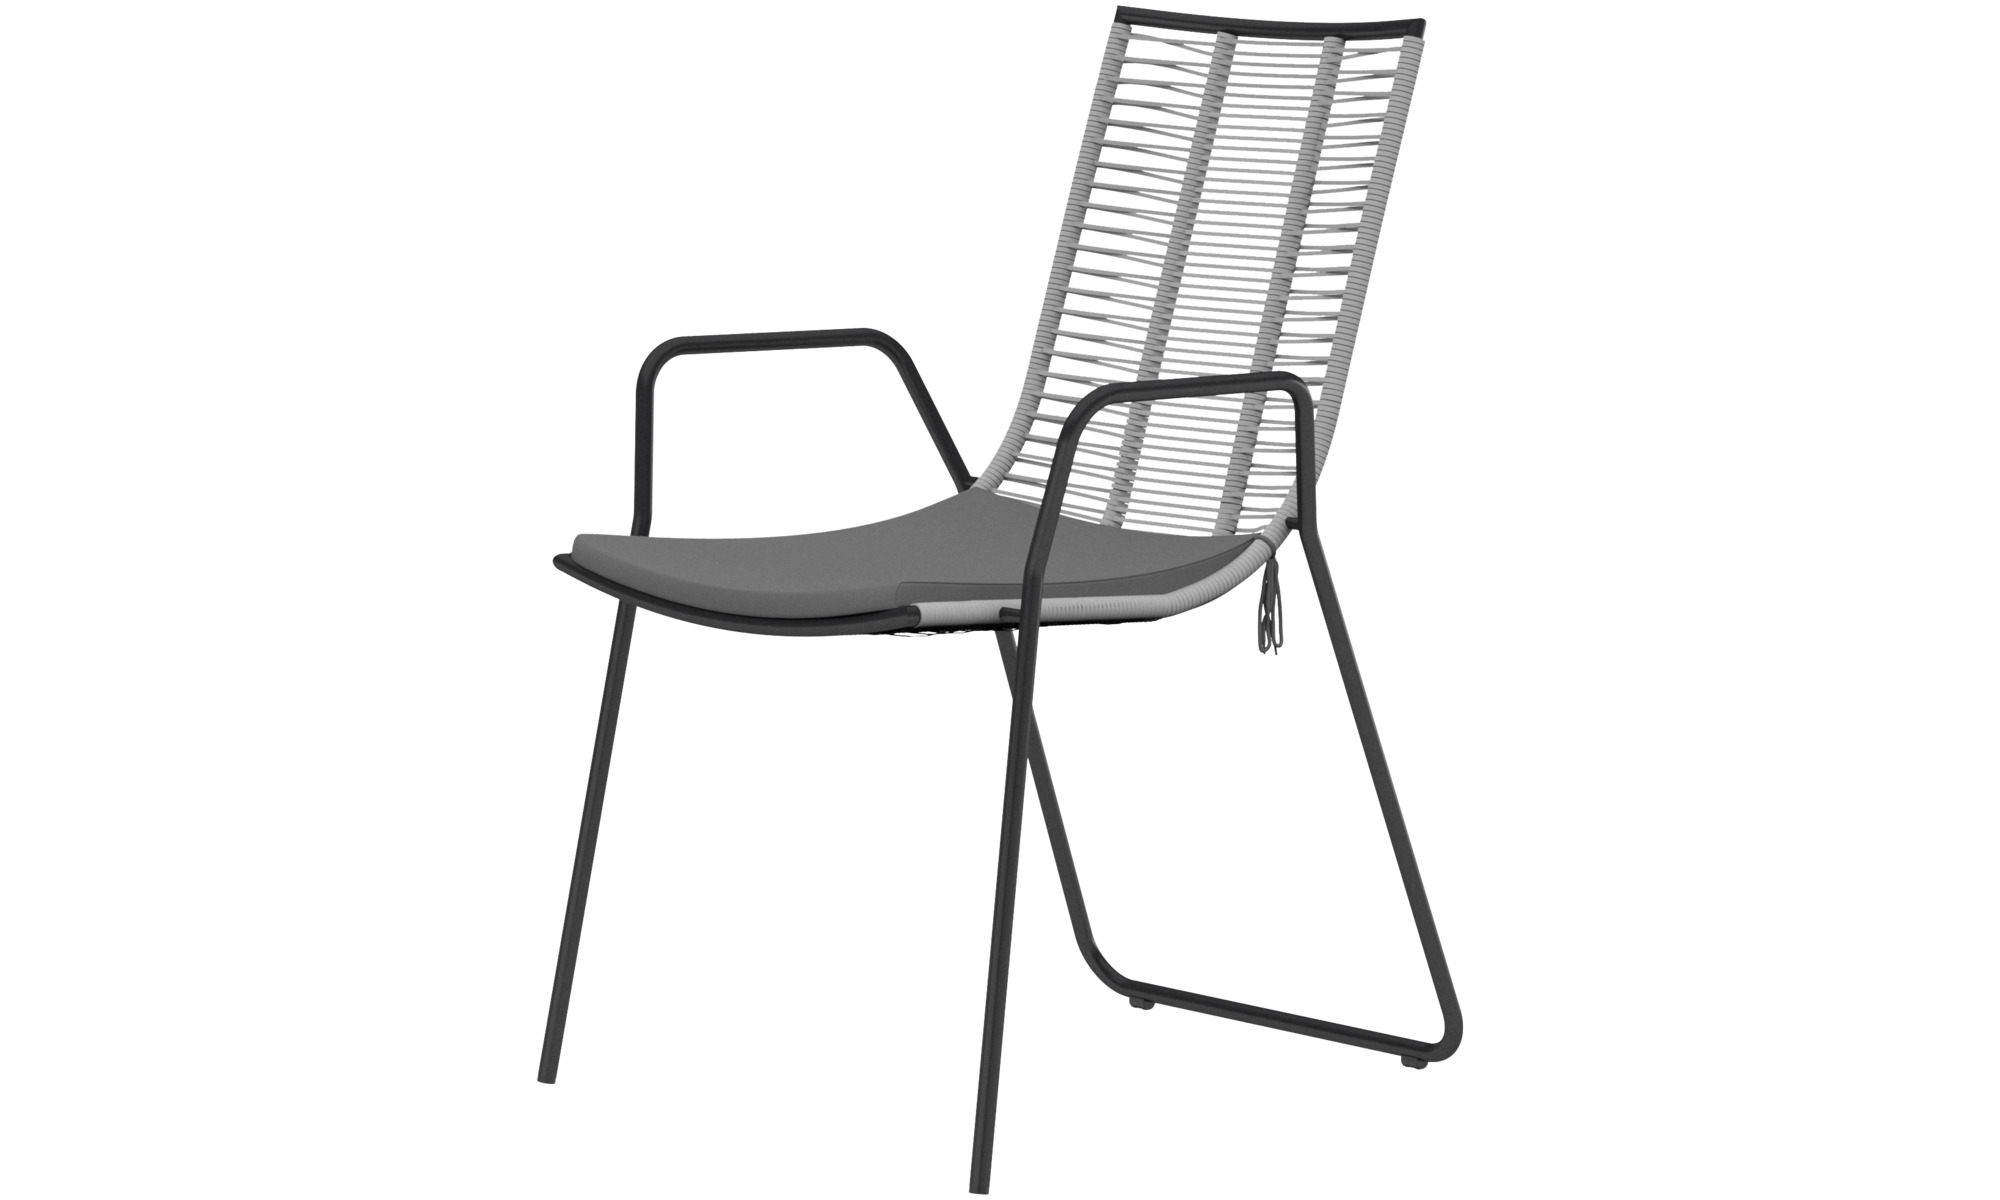 Outdoor chairs - Elba chair (for in and outdoor use) - Grey